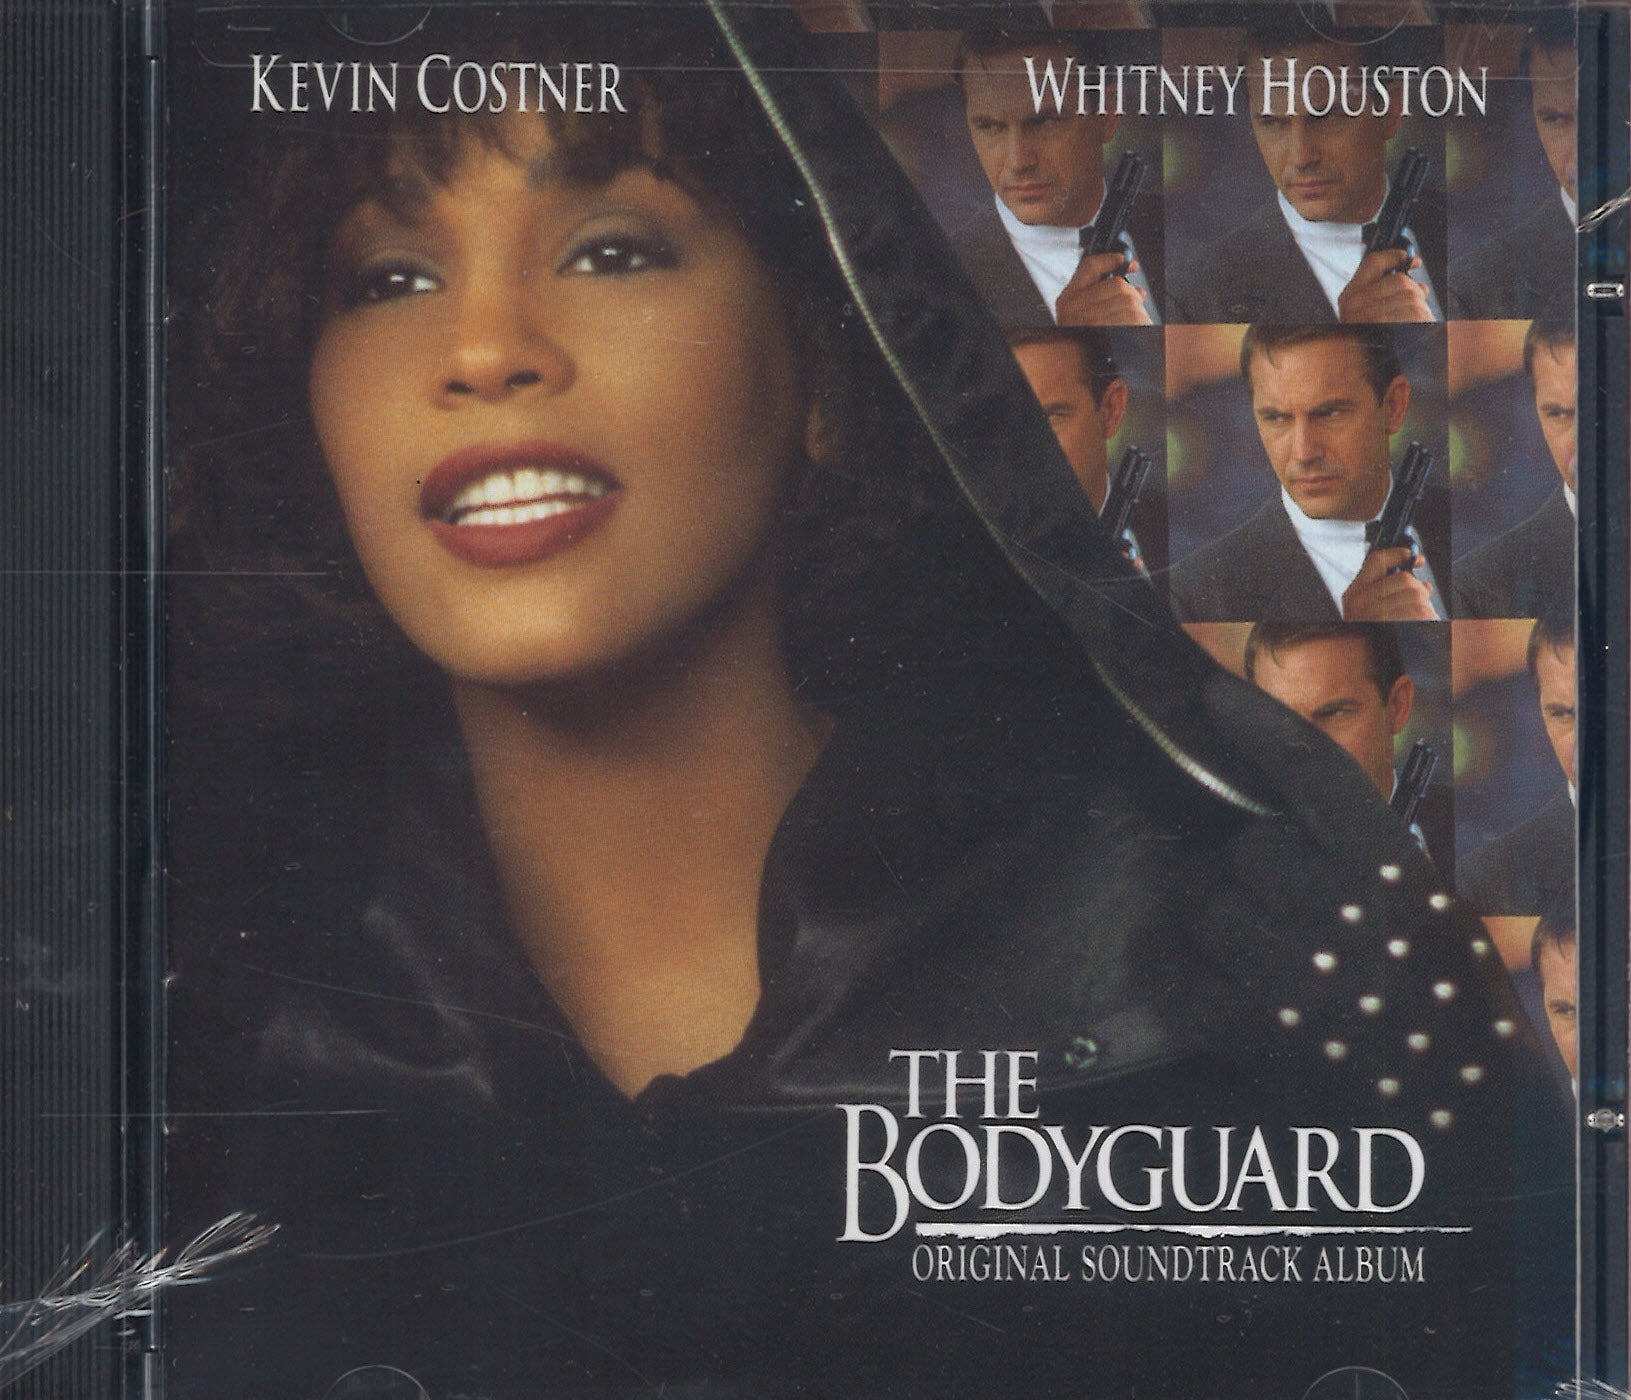 The Bodyguard (Music From The Original Motion Picture Soundtrack) Whitney Houston